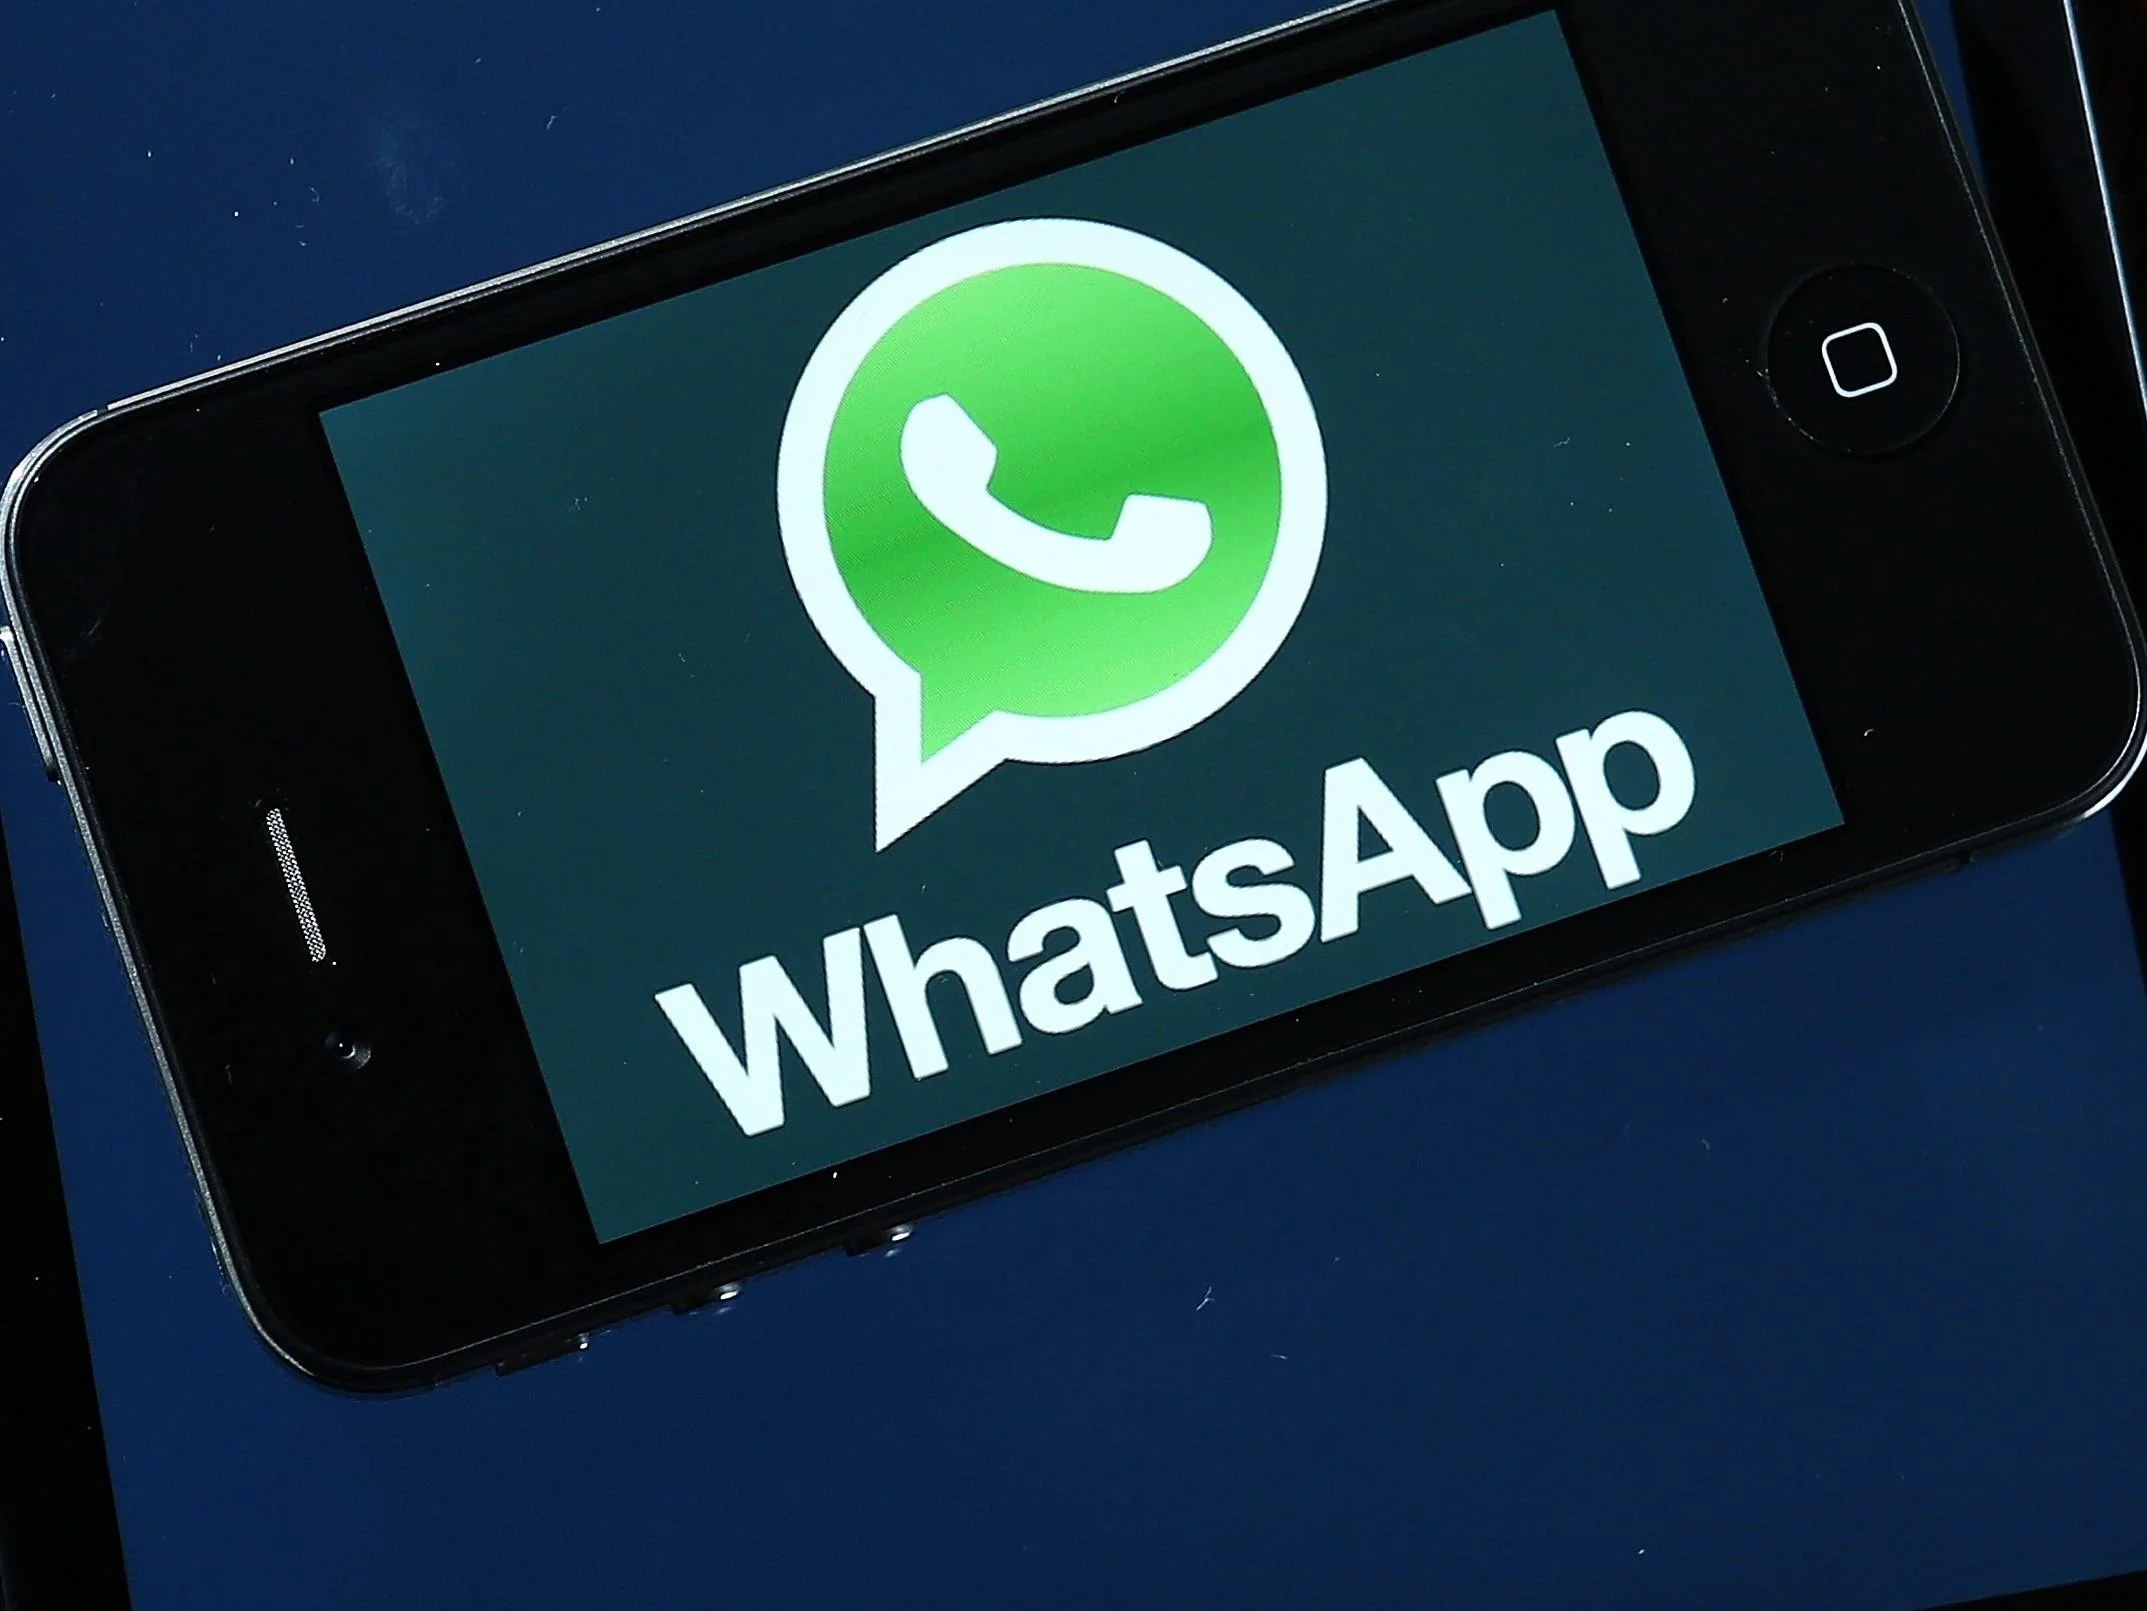 WhatsApp will soon stop working on millions of phones: here is a complete list of all the affected devices